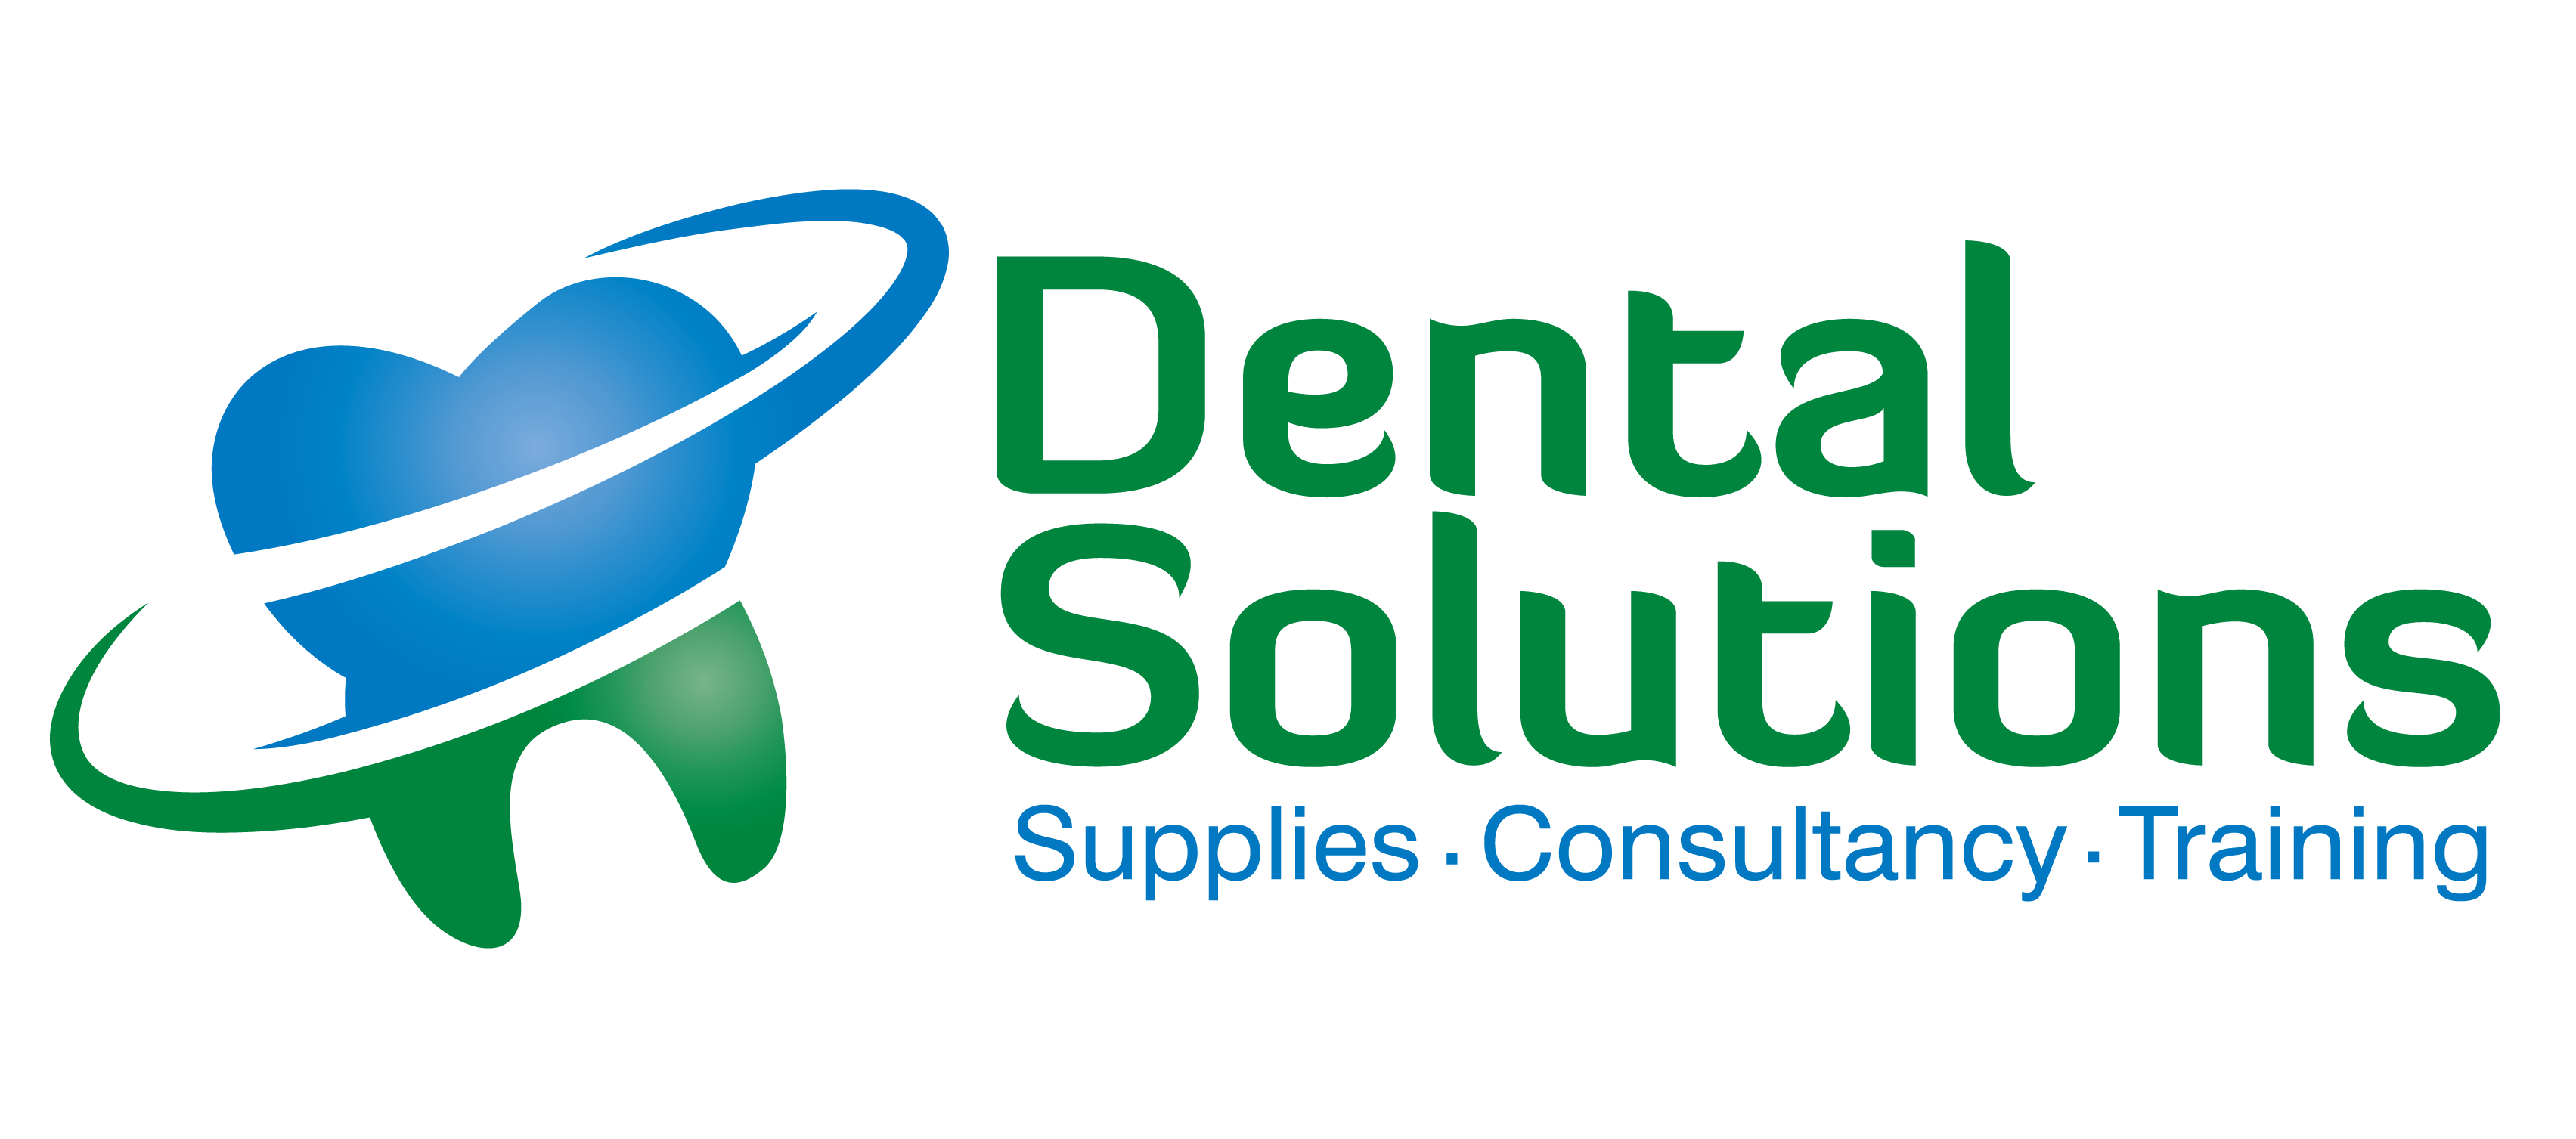 Dental clipart dental supply. Home solutions